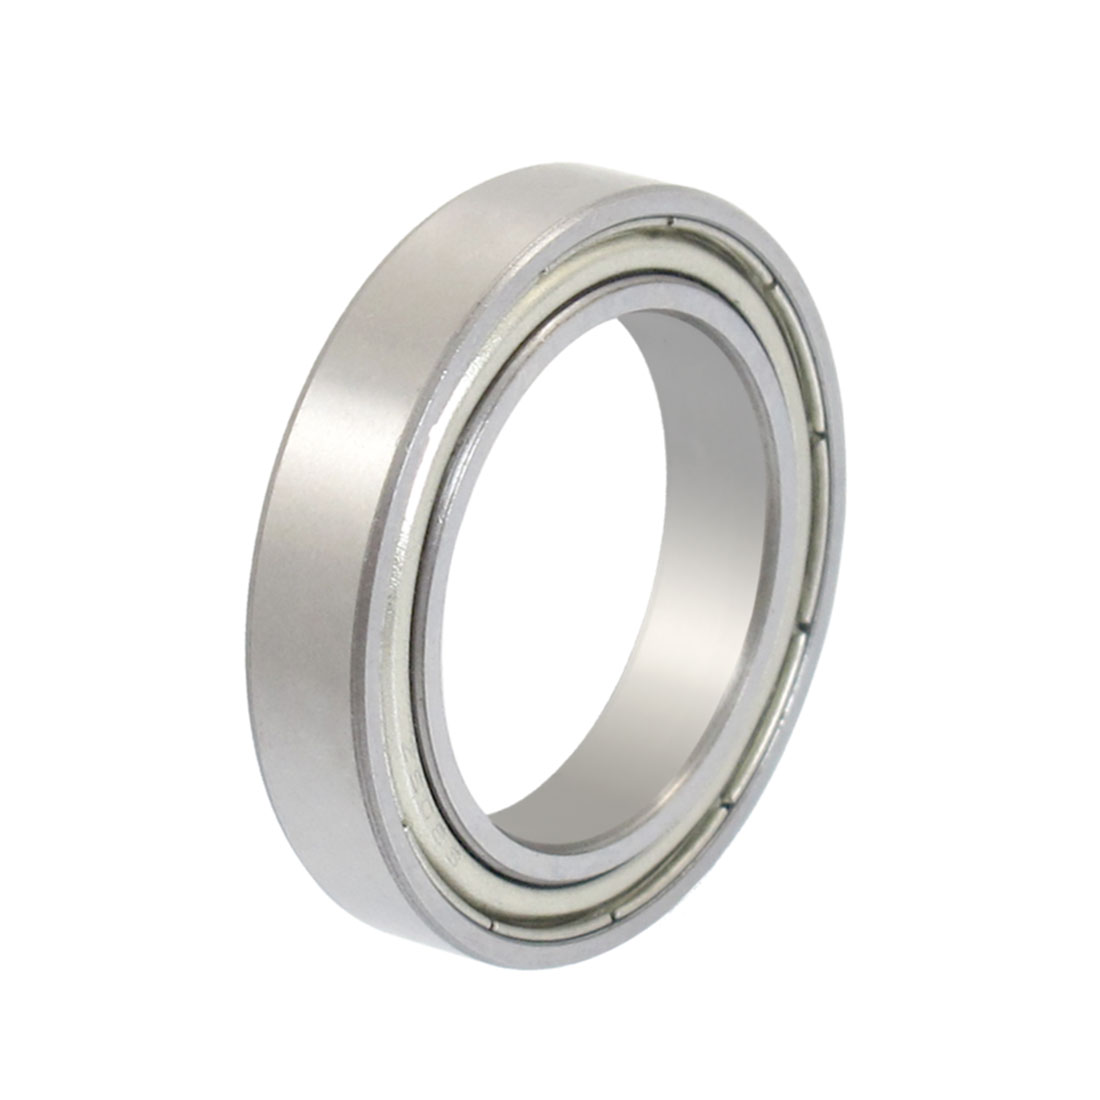 25 x 37 x 7mm 6805 Shielded Miniature Deep Groove Radial Ball Bearing